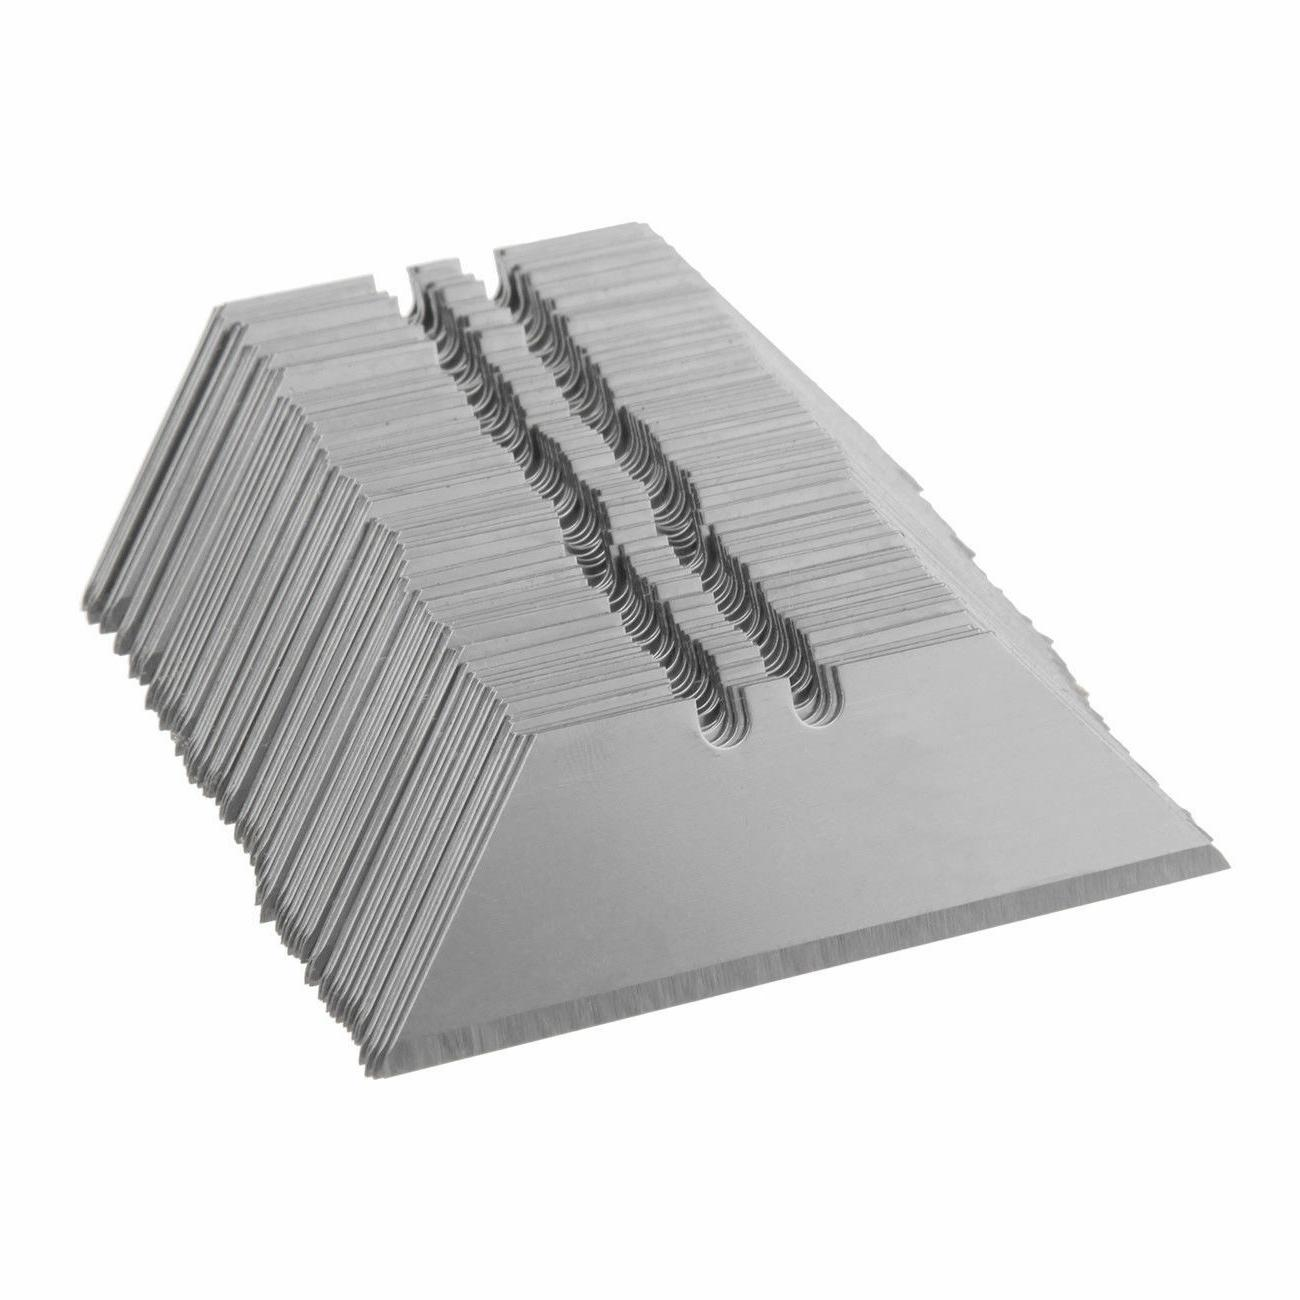 100 plus 20 free replacement utility blades